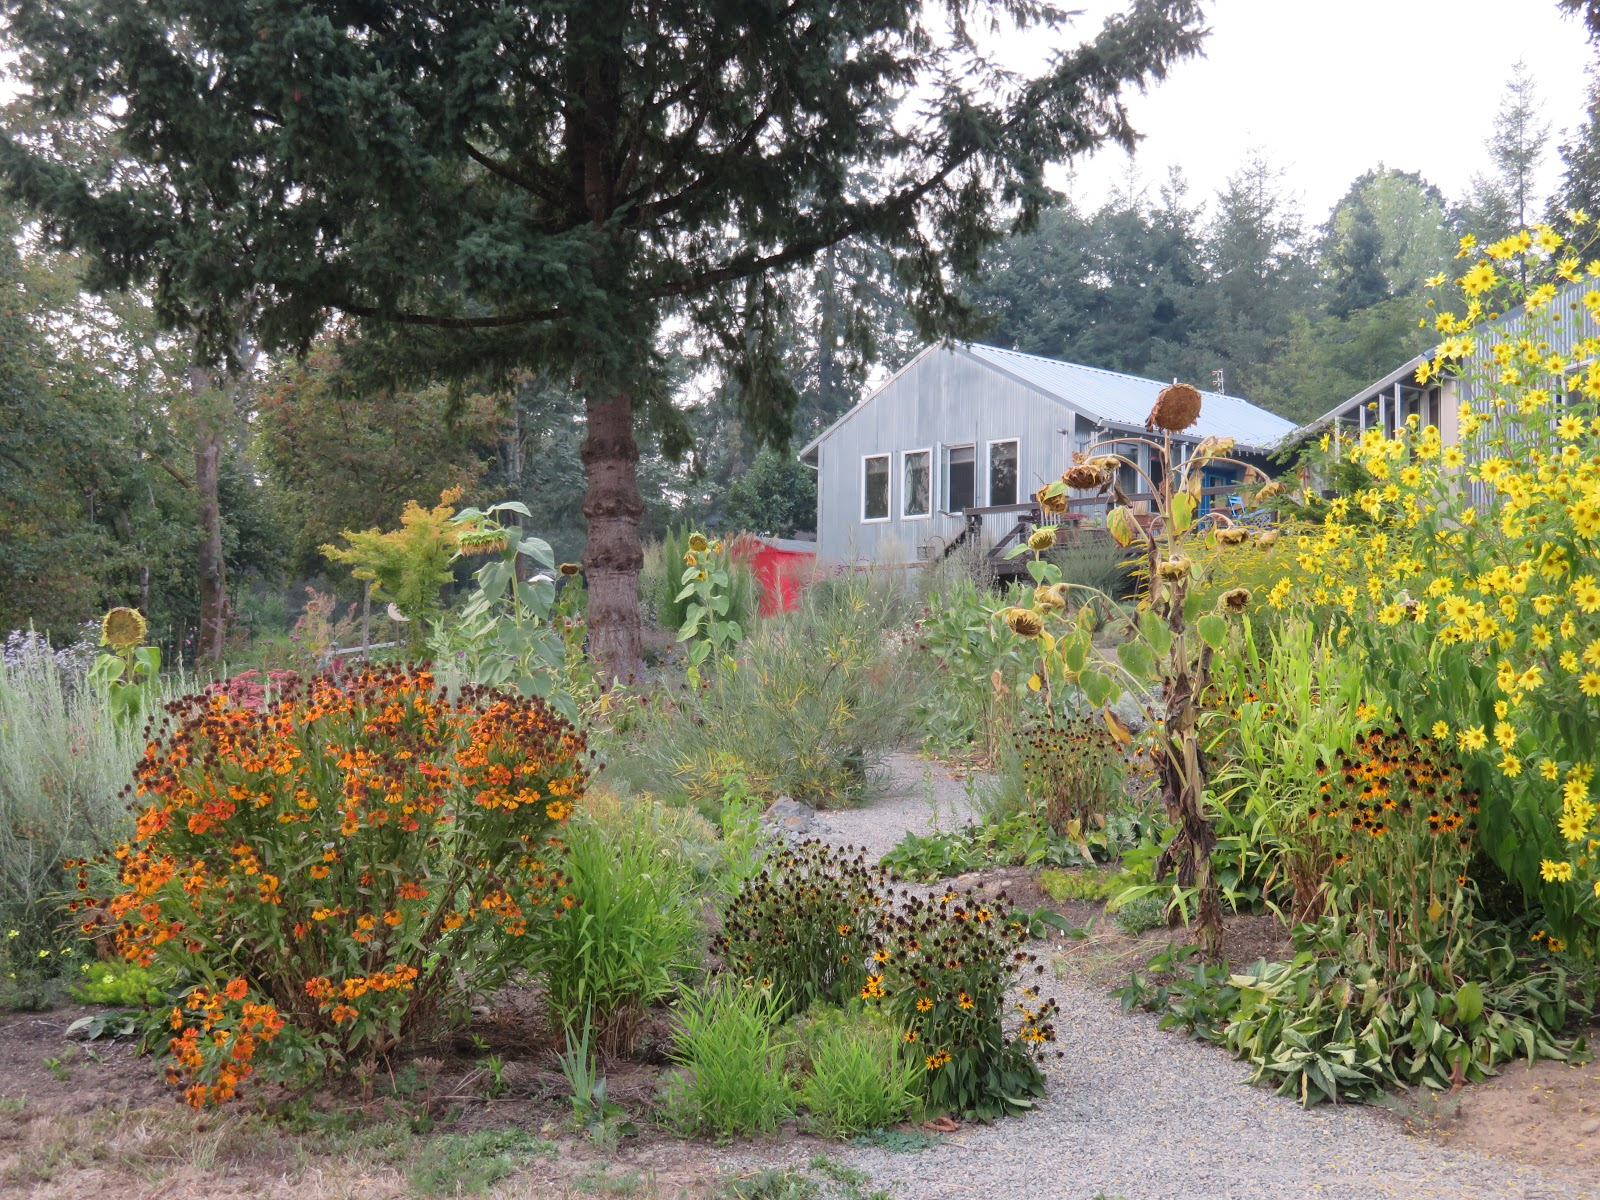 The End of Summer at Chickadee Gardens